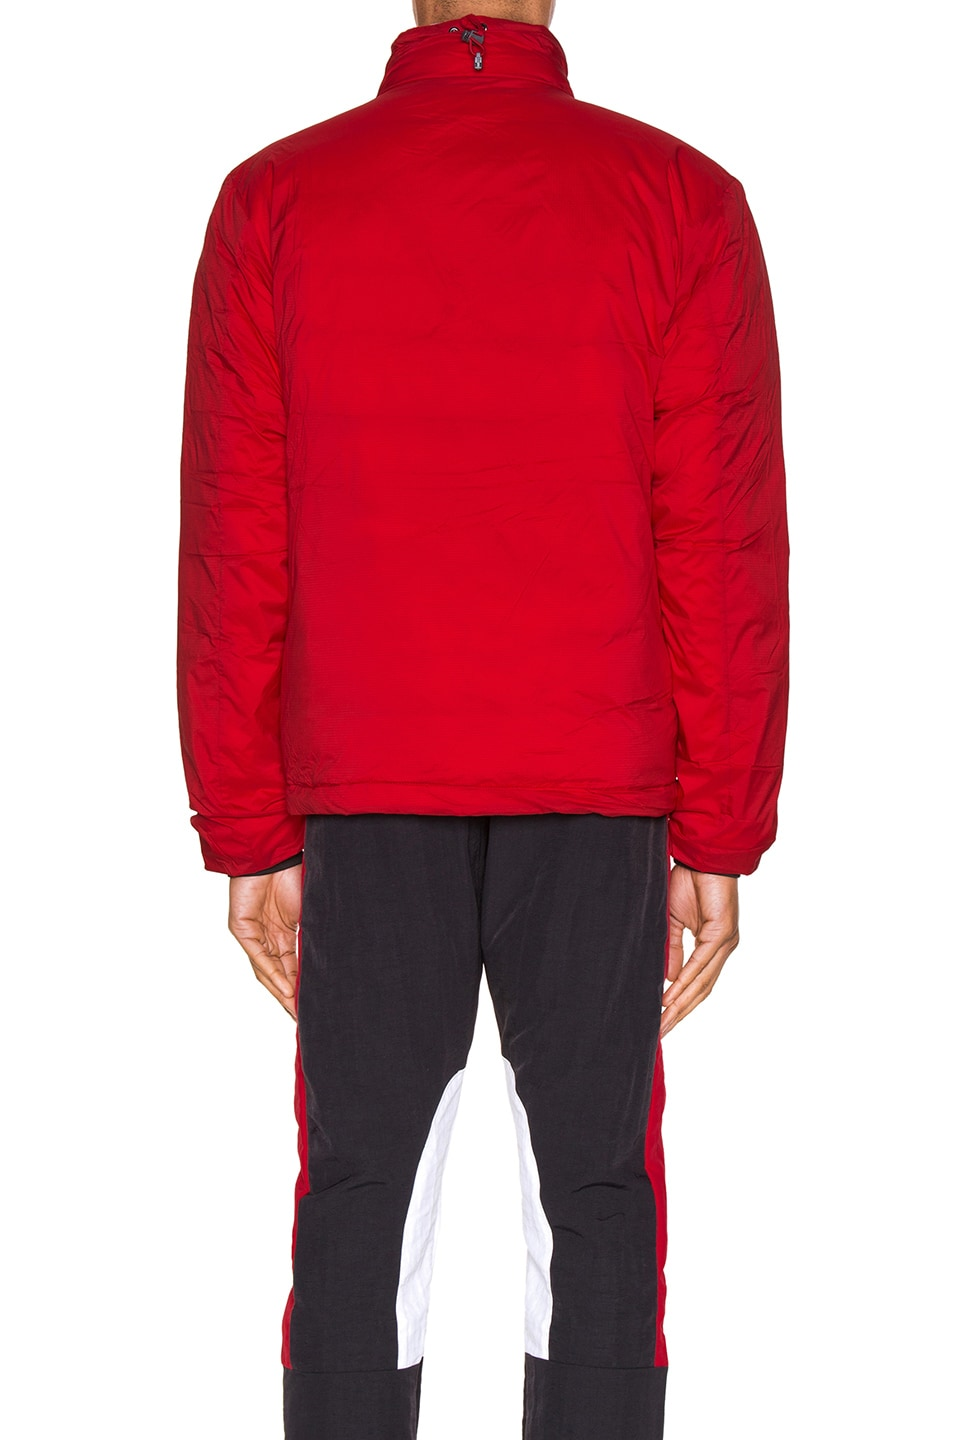 Image 5 of Canada Goose Lodge Jacket in Red